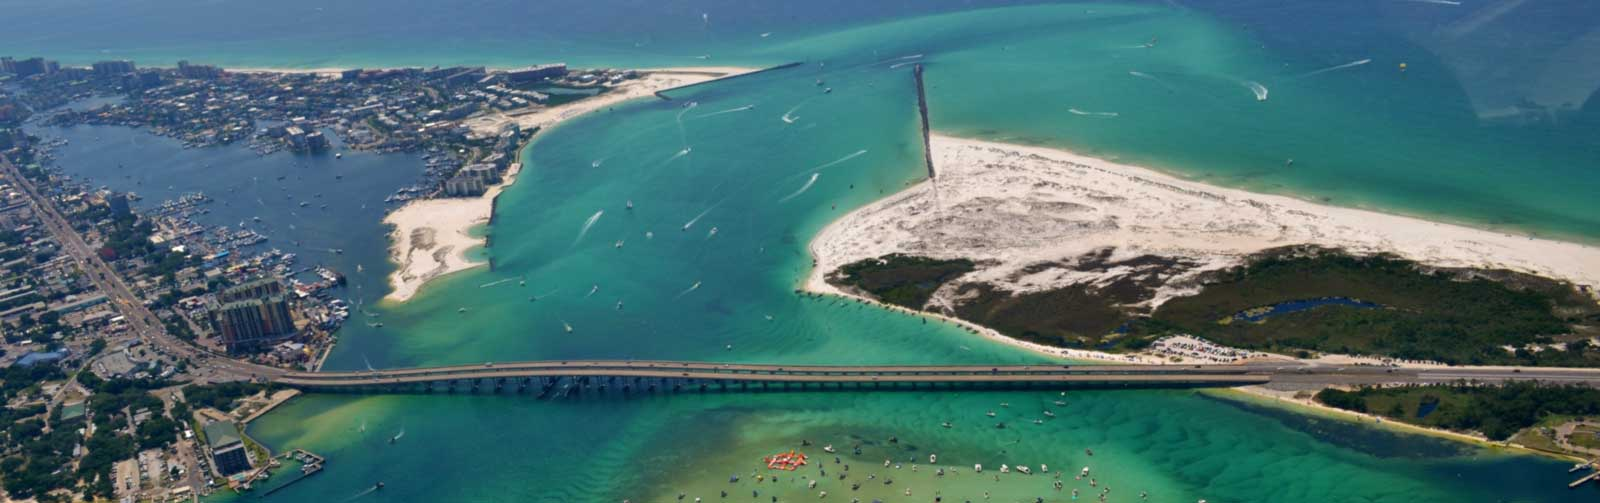 View of Destin from a Helicopter